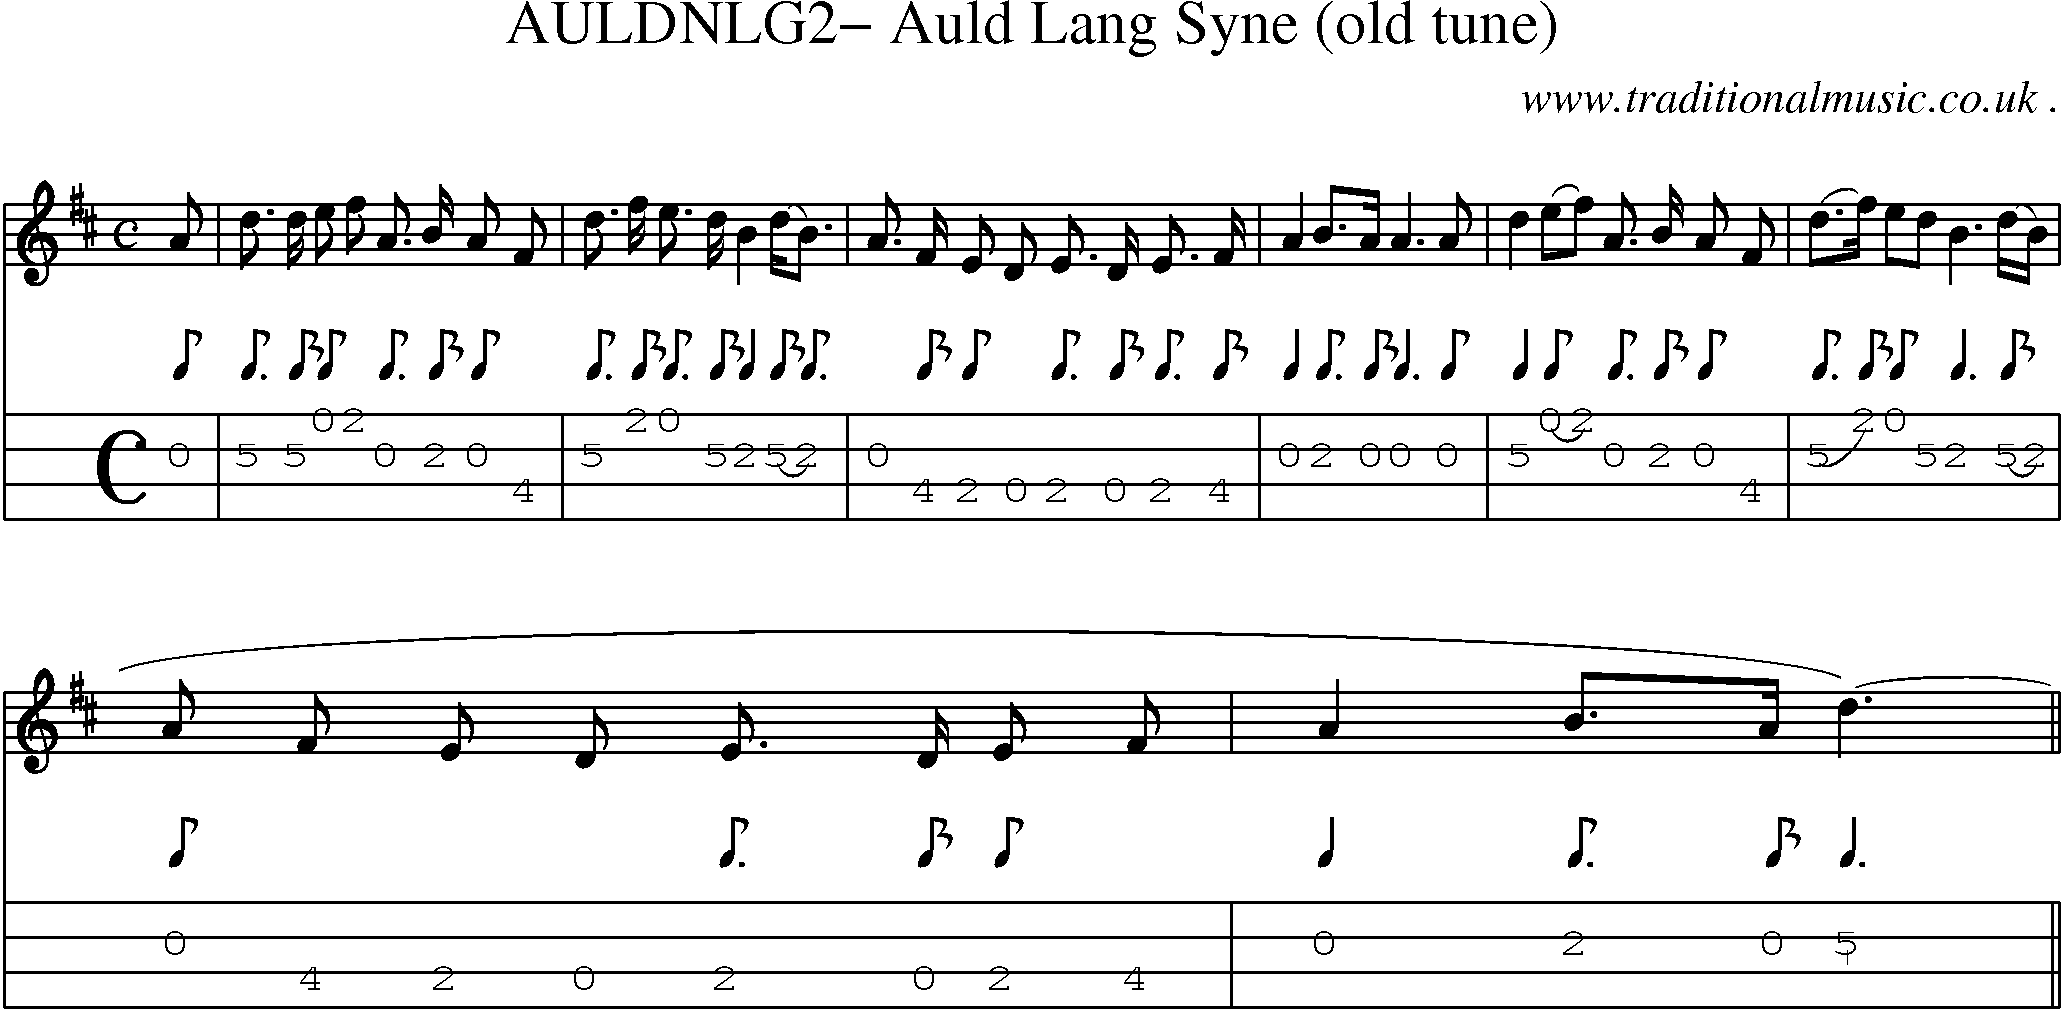 Folk and Traditional Music, Sheet-Music, Mandolin tab, midi, mp3 and PDF for: Auldnlg2 Auld Lang ...